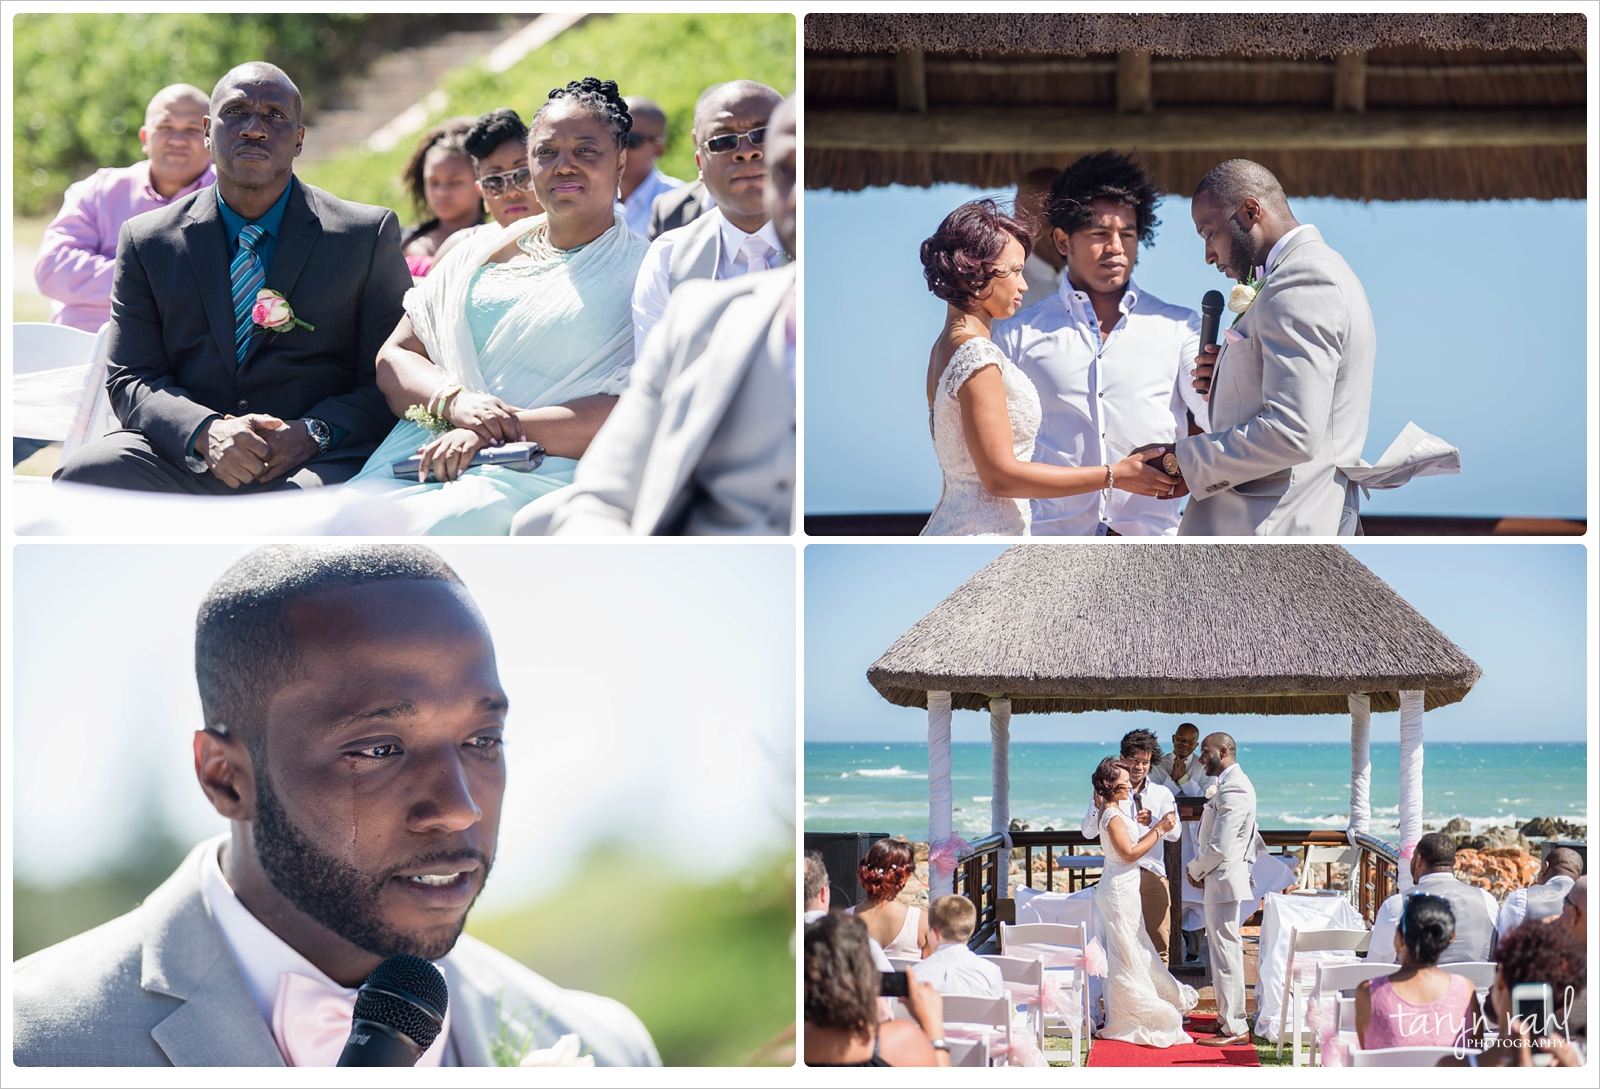 Samantha and Marcus' | Wedding at 'The Willows'